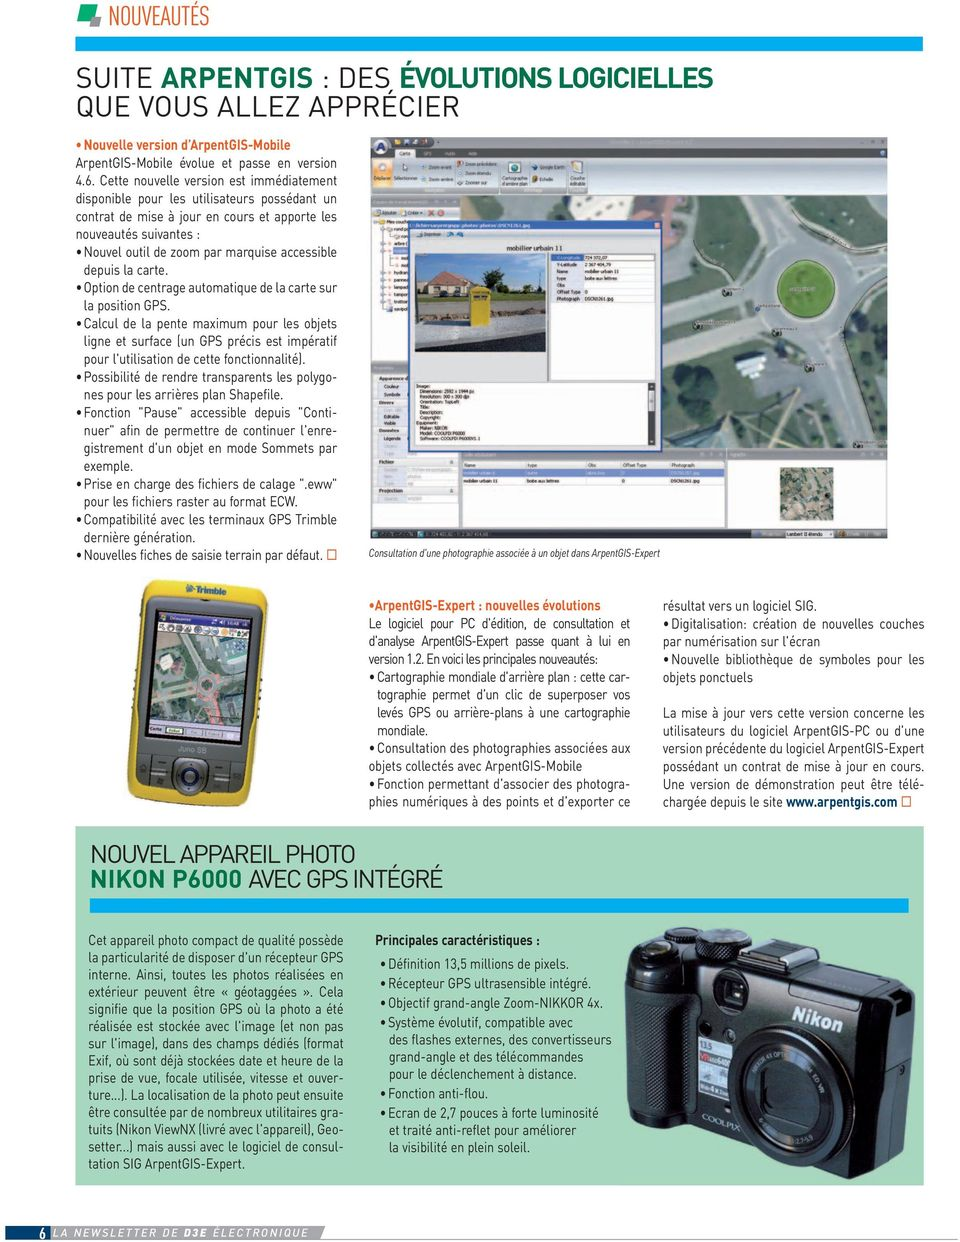 accessible depuis la carte. Option de centrage automatique de la carte sur la position GPS.